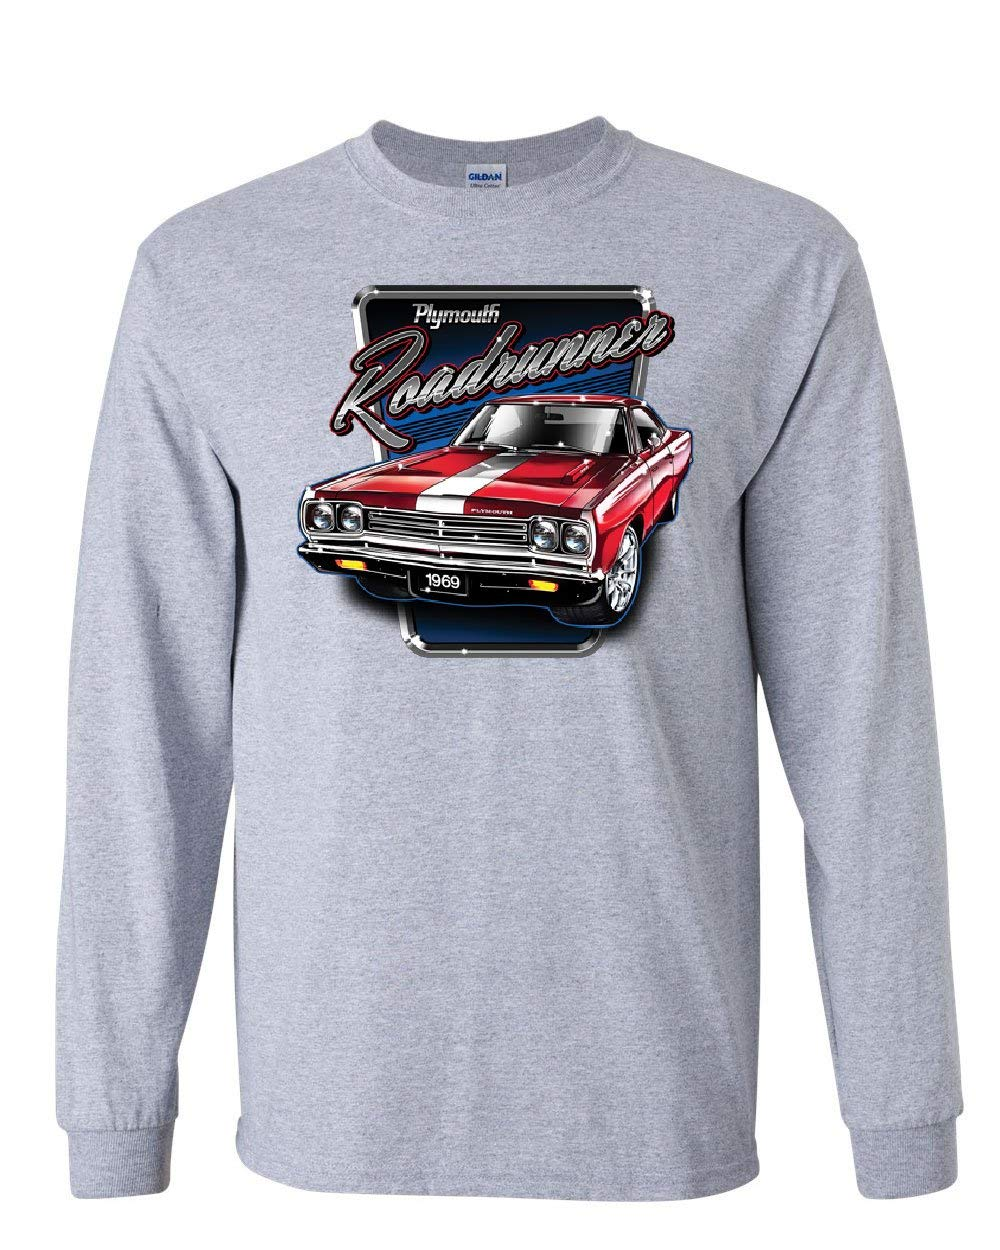 Plymouth Roadrunner T Shirt American Muscle Car Classic Route 6 3803